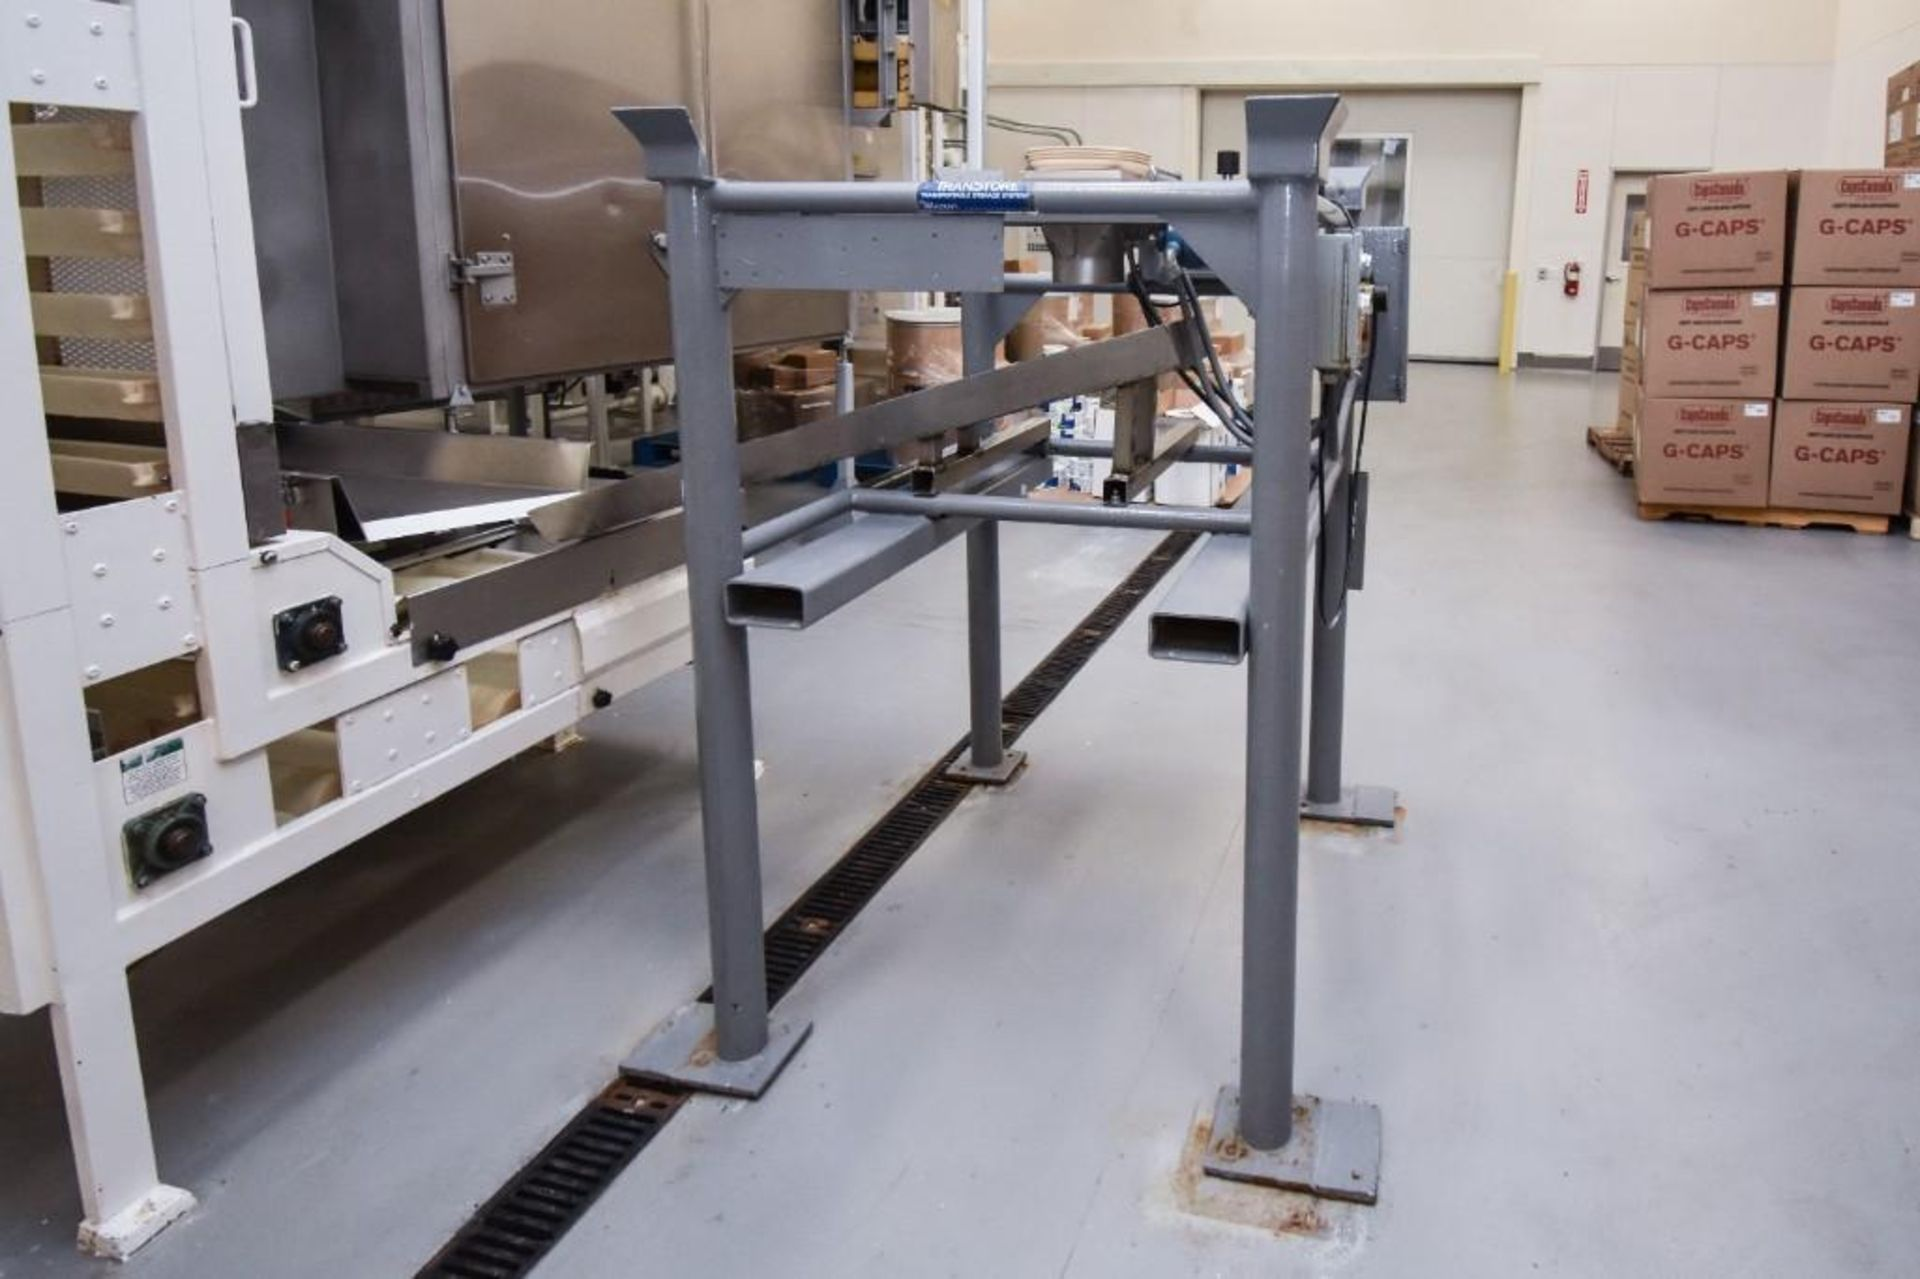 Vibratory Feeder For Totes - Image 6 of 7